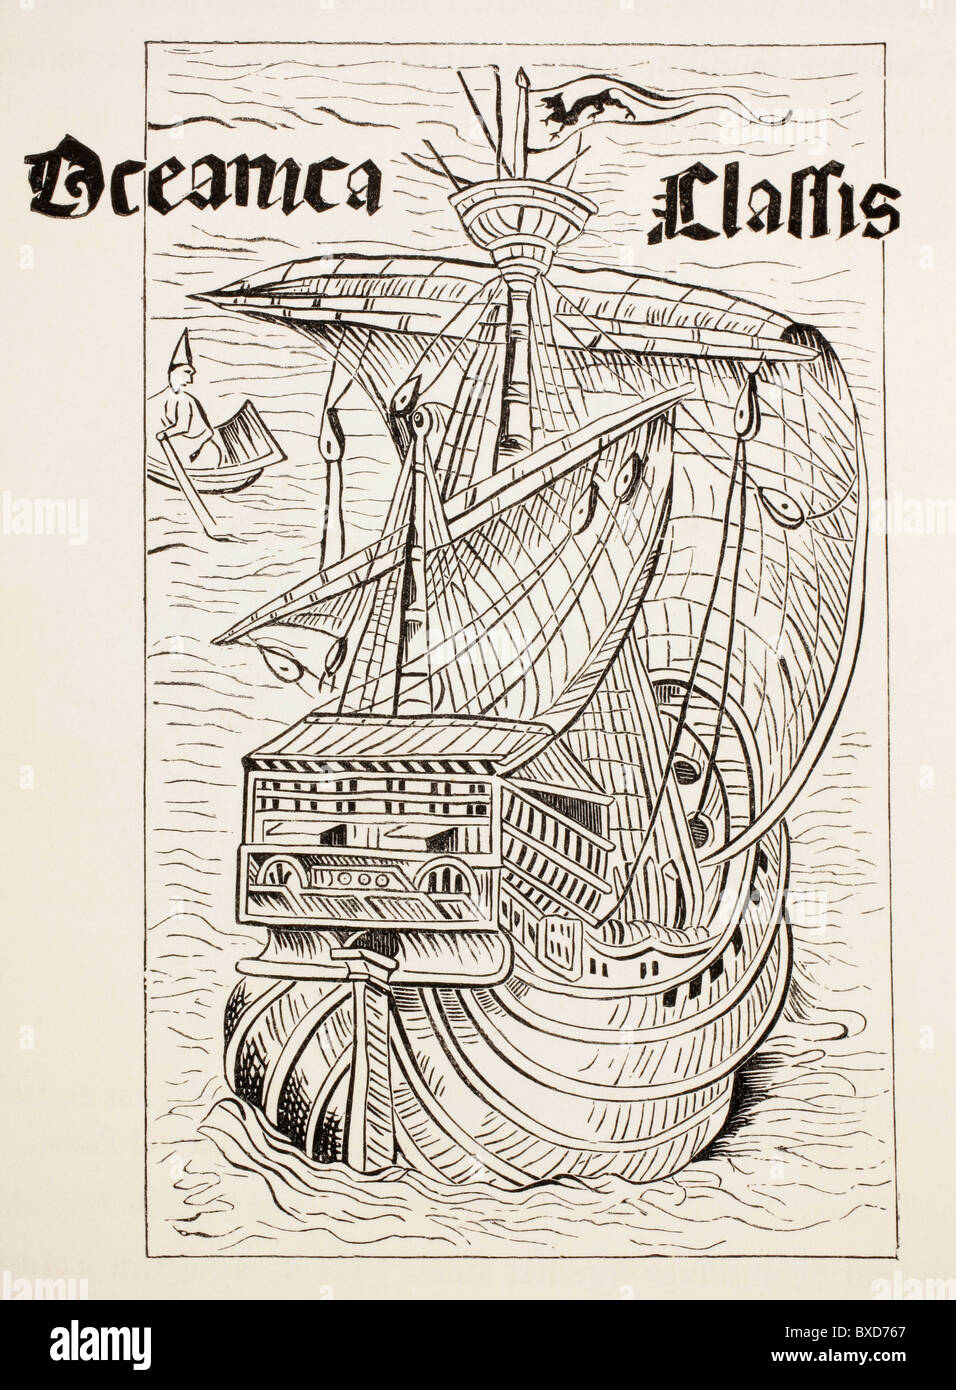 Spanish caravel of the 15th or 16th century of a type possibly used by Columbus on one of his voyages to the Americas. - Stock Image